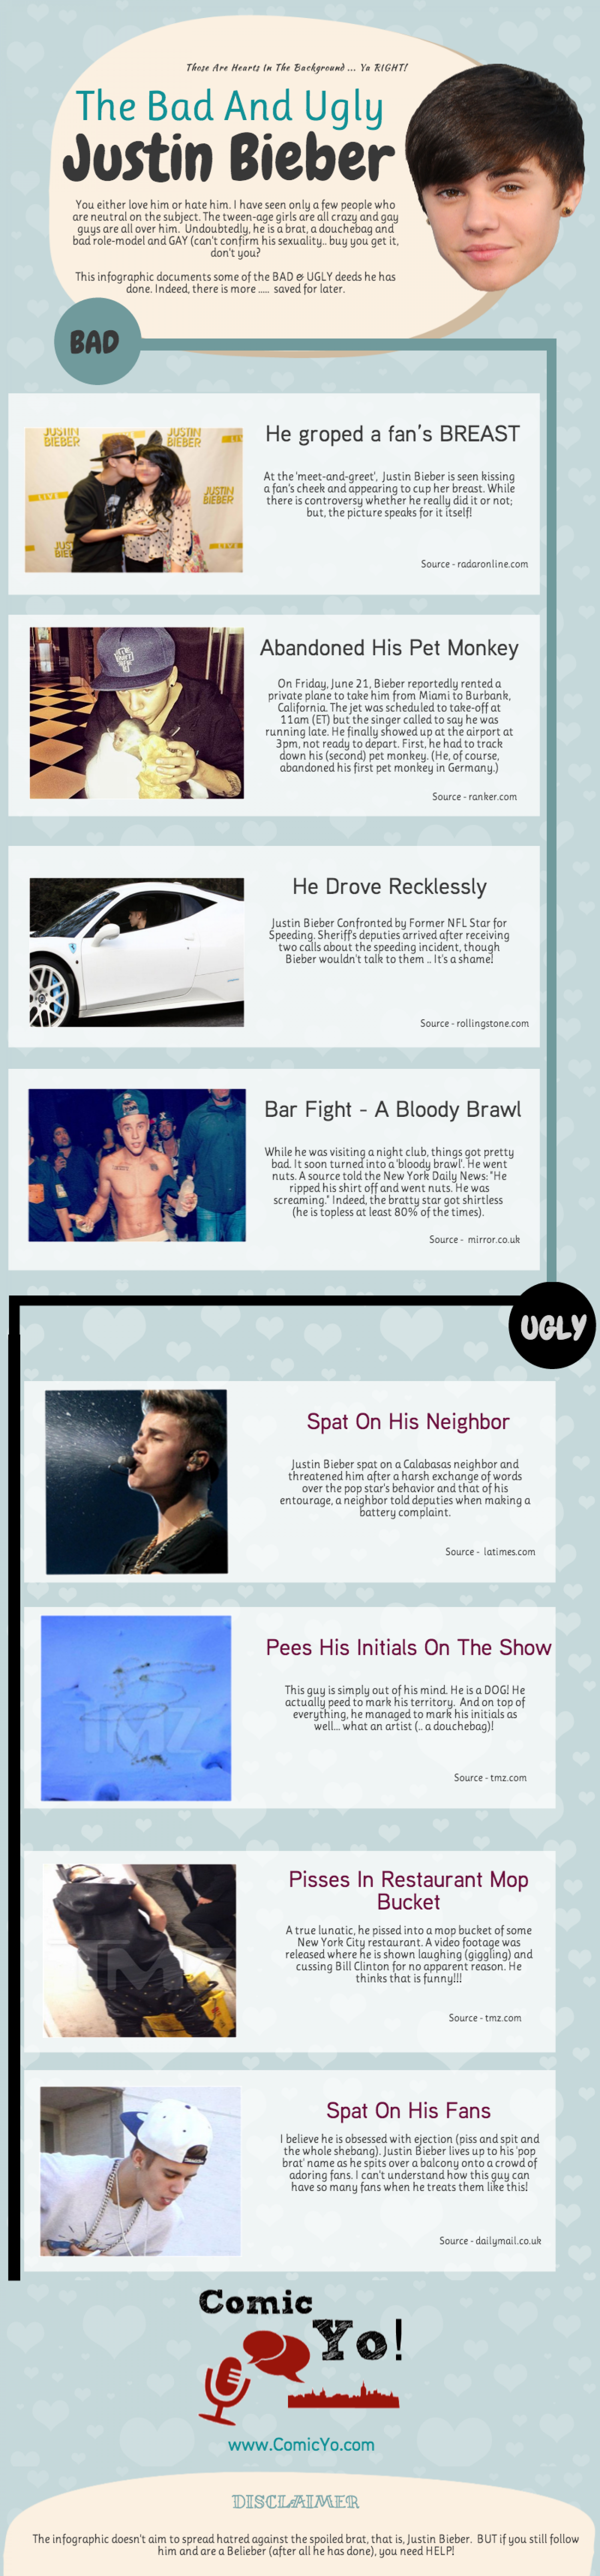 The Bad And Ugly – Justin Bieber Infographic